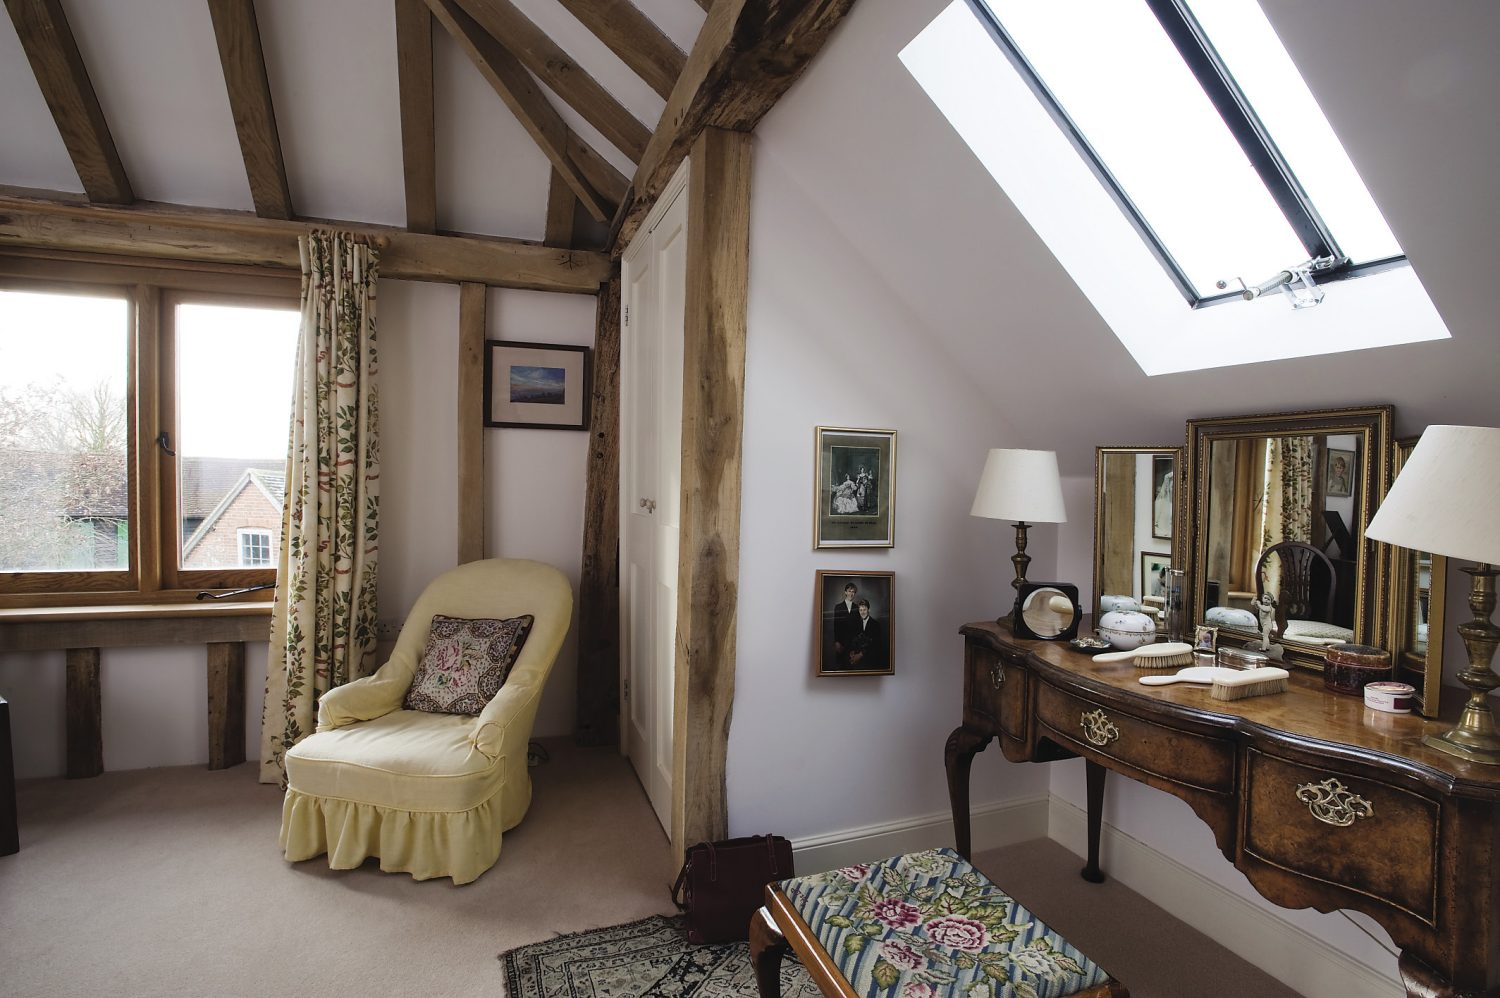 the couple's bedroom has views towards both the North and South Downs.